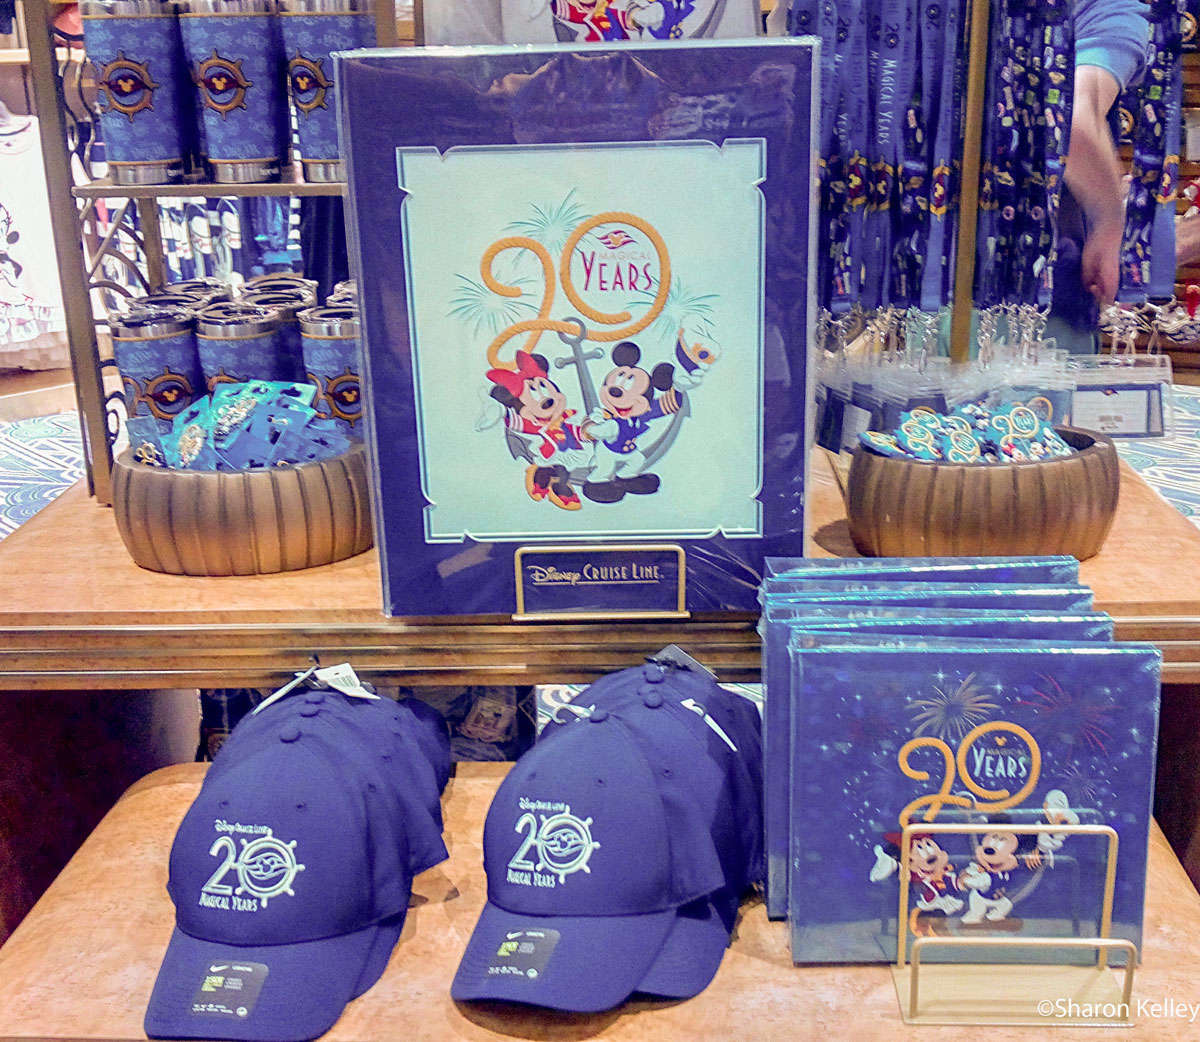 Disney Cruise Line Halloween Merchandise.20 Magical Years Logo Merchandise The Disney Cruise Line Blog